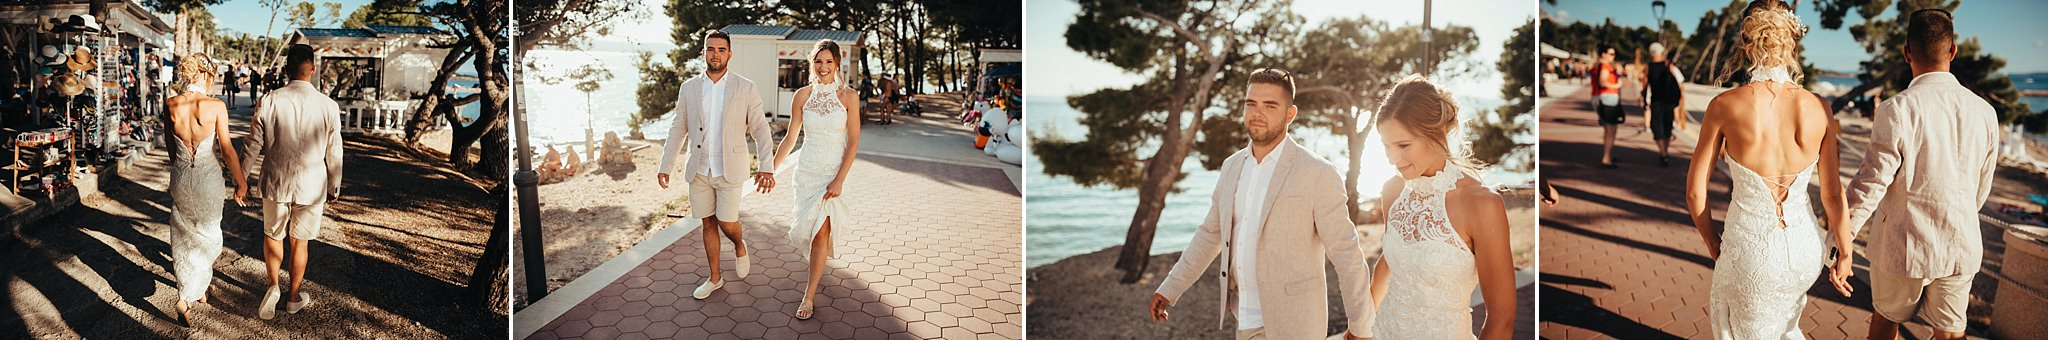 dalmatia wedding photographer